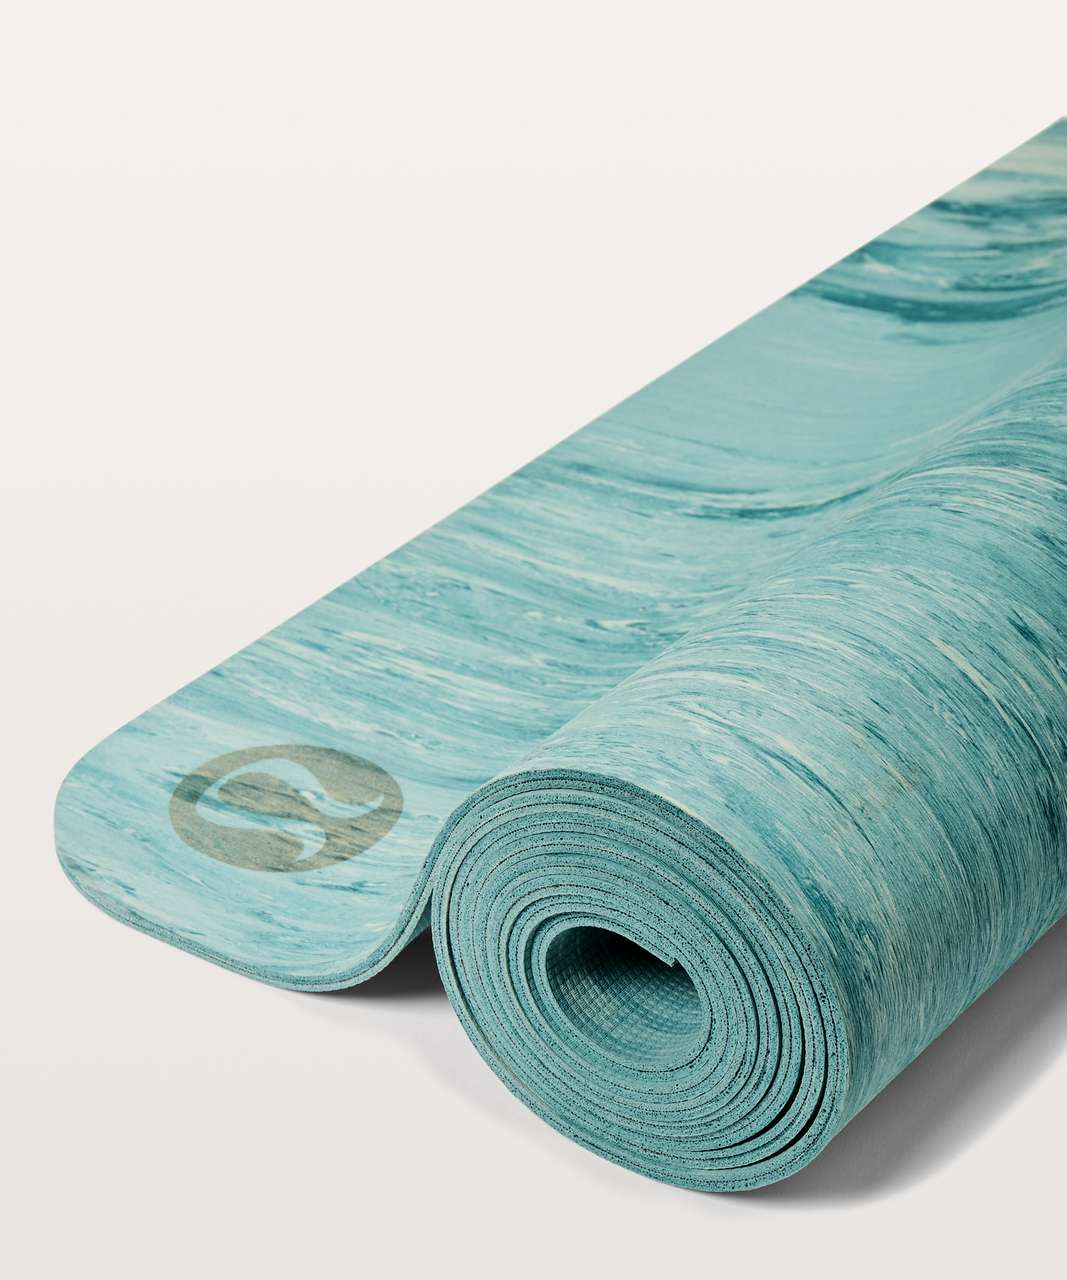 Lululemon Namastay Mat - Sea Green / Tonic Sea / Teal Shadow